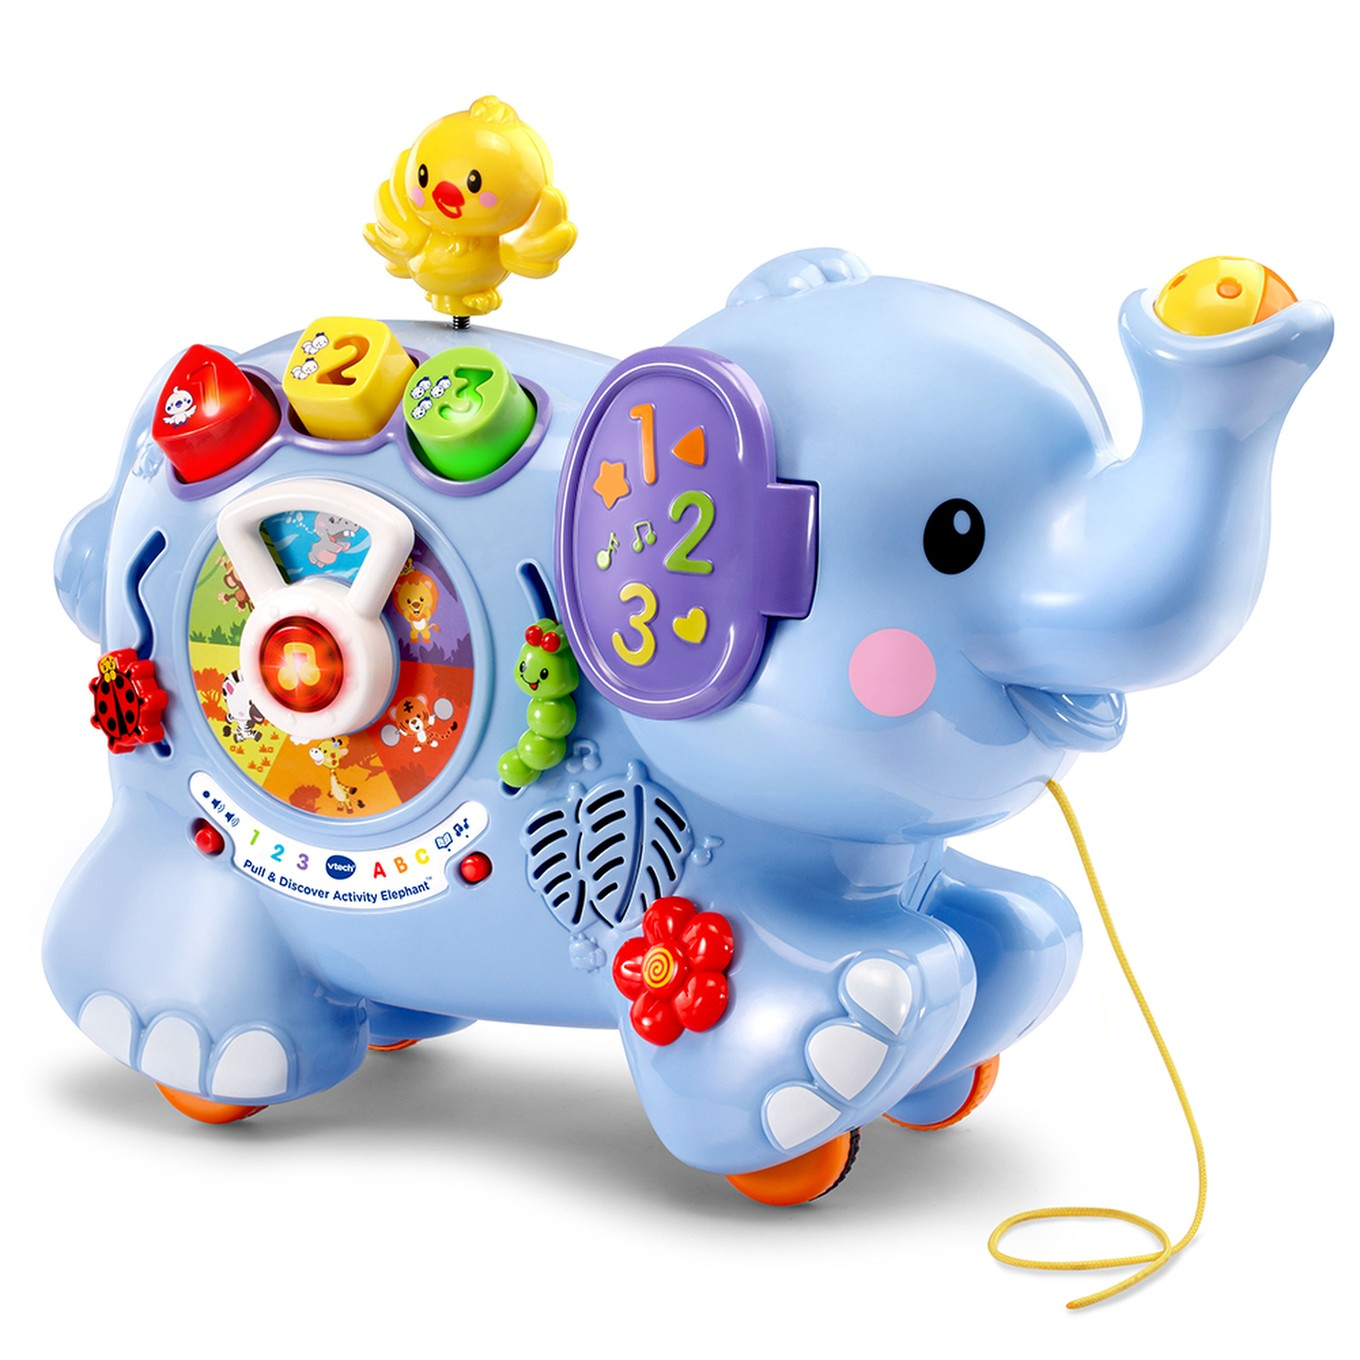 Target Toy Guide : Pull discover activity elephant™ vtech